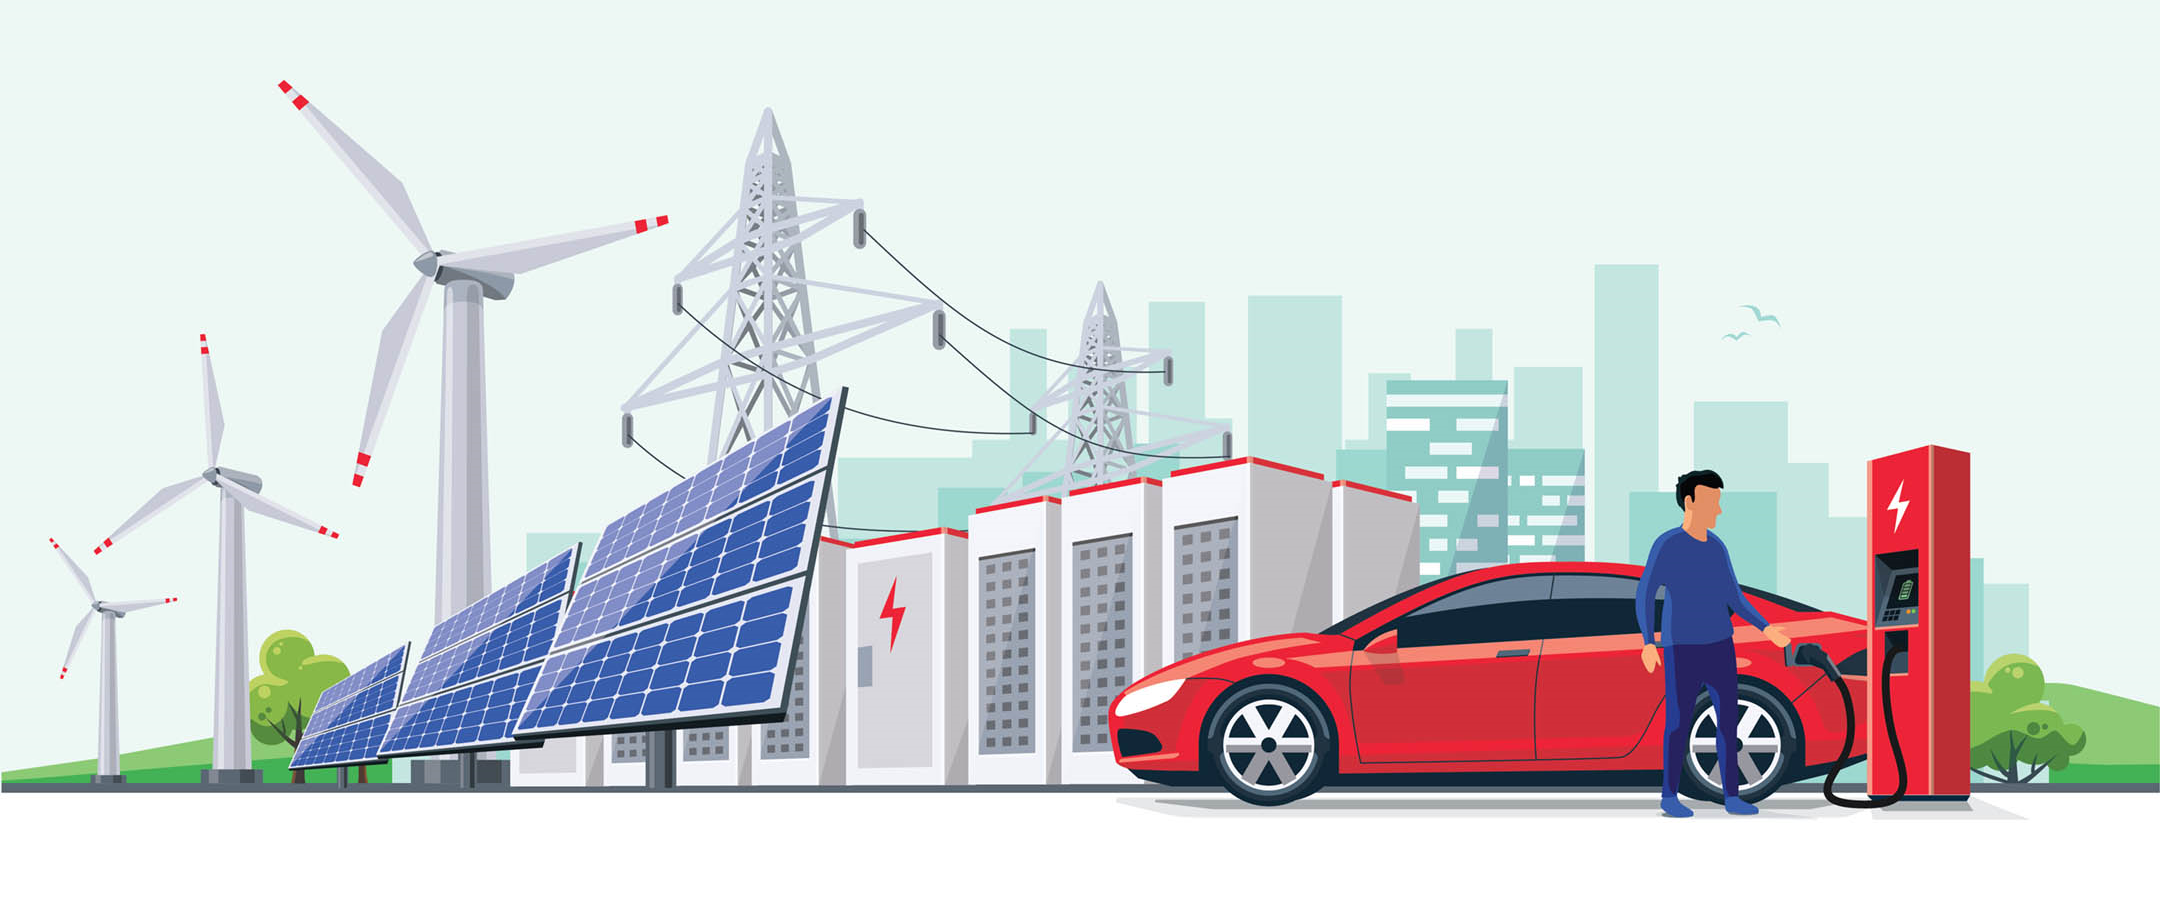 """Person fueling an electric car in front of solar panels and wind turbines overlaid with a chart of consumption over time and segments of a line graph indicated as """"energy savings"""", """"peak load offset"""", and """"peak load reduction""""."""